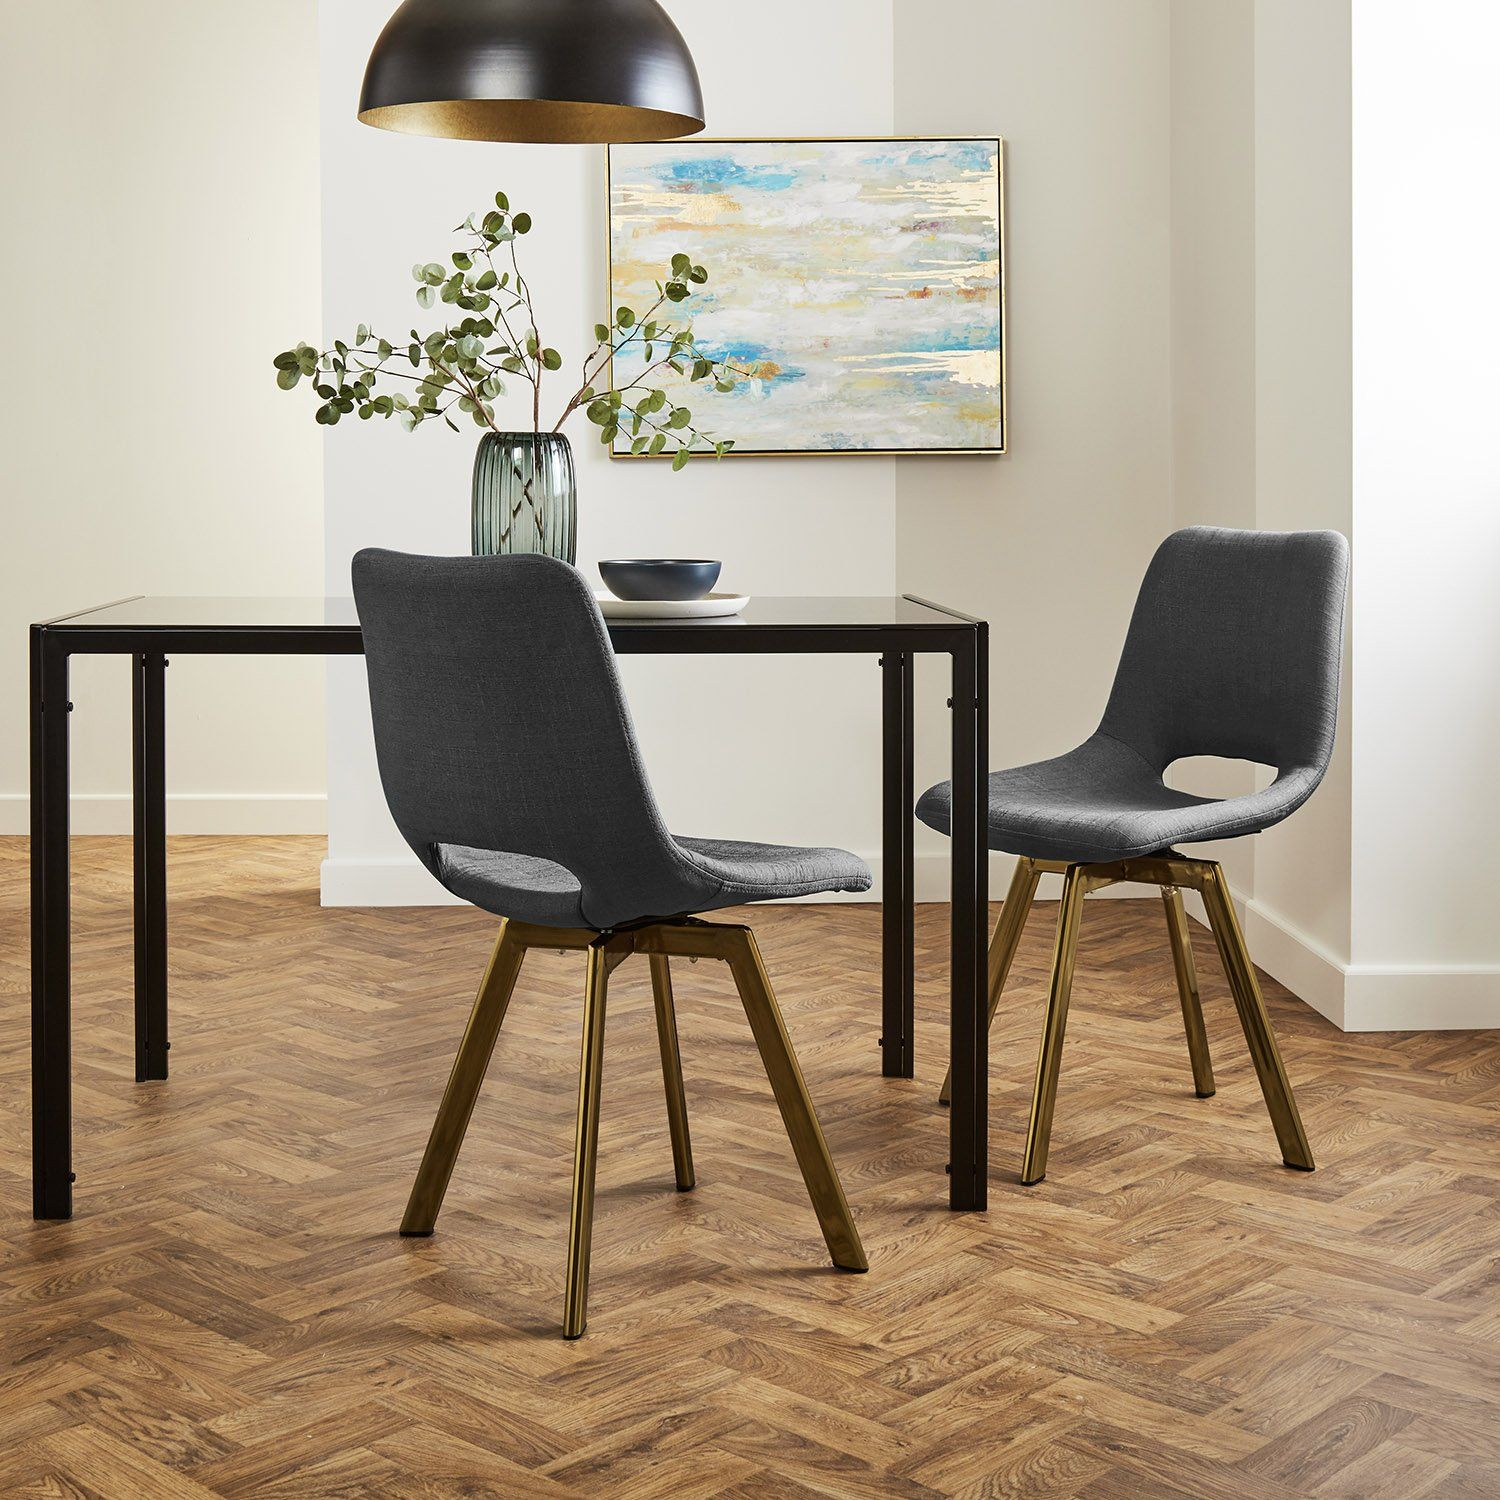 Margot dining chairs x2 - grey and brass- Laura James